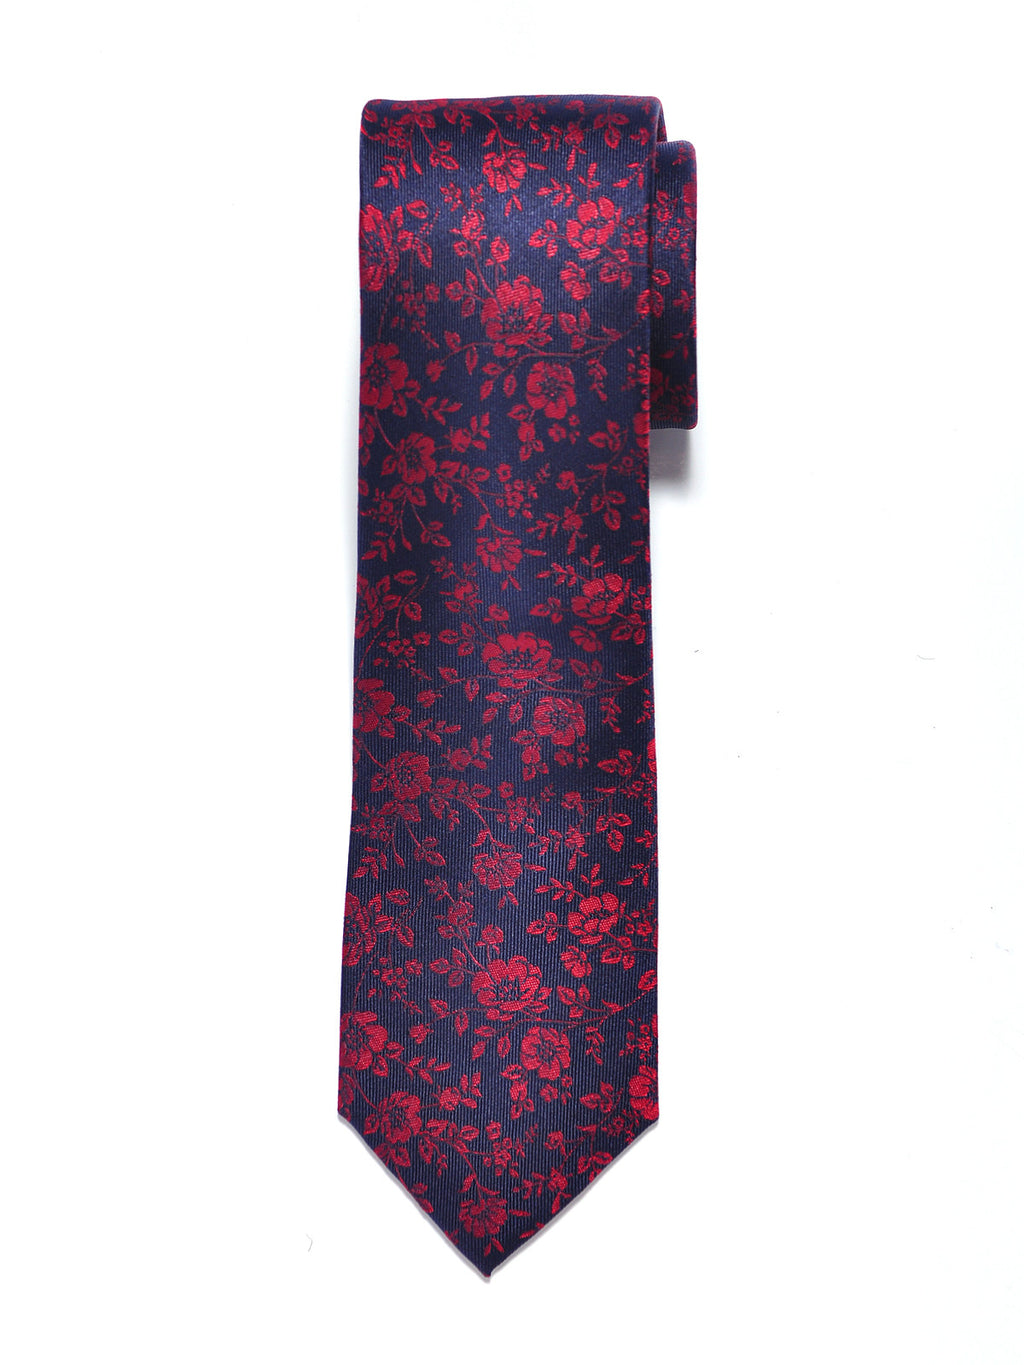 Navy Blue and Red Floral Silk Tie